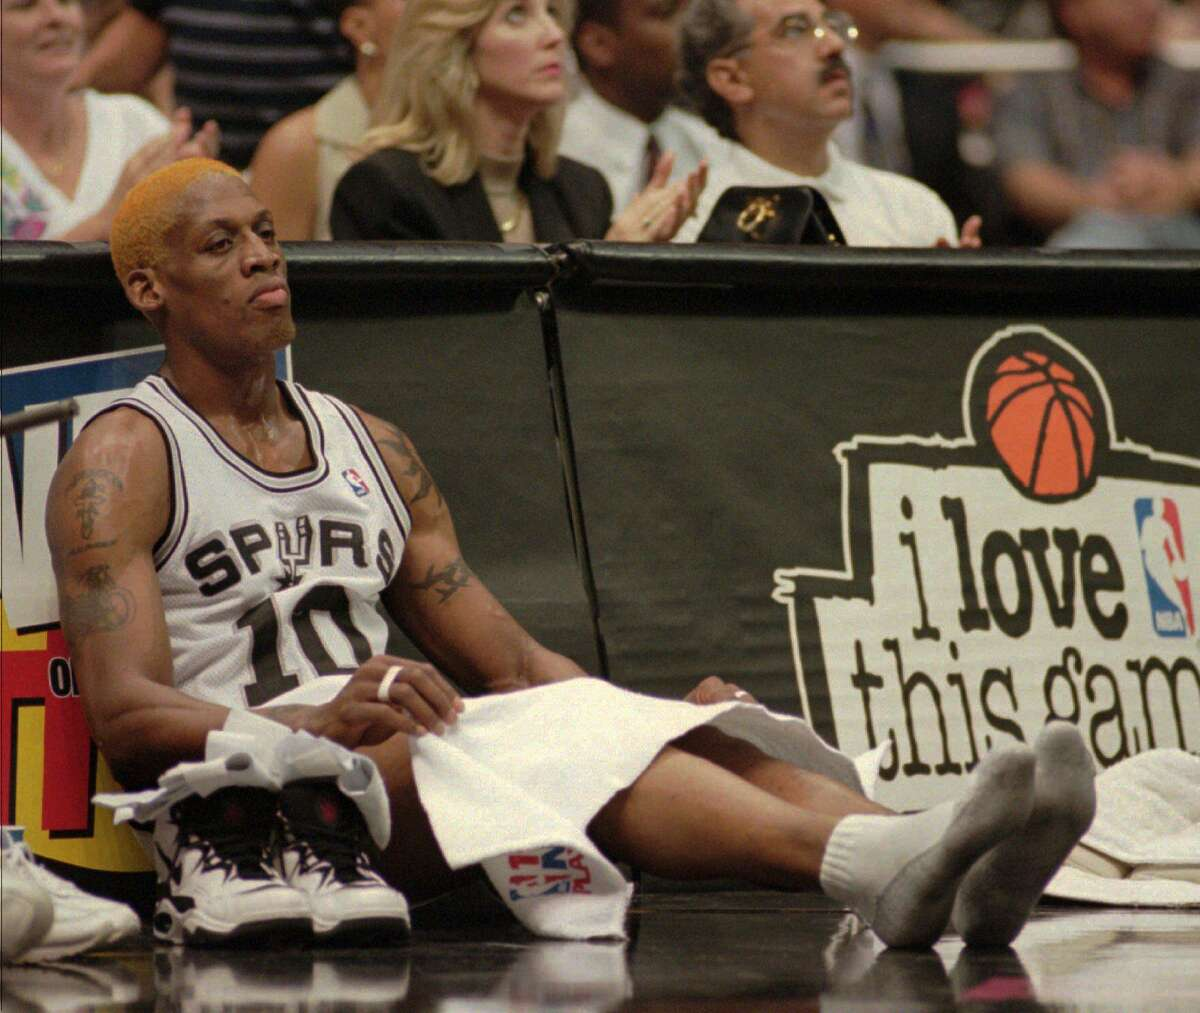 San Antonio Spurs Dennis Rodman sits with shoes off by the bench against the Houston Rockets in the second game of the Western Conference Finals Wednesday, May 24, 1995 in San Antonio. (AP Photo/David J. Phillip)